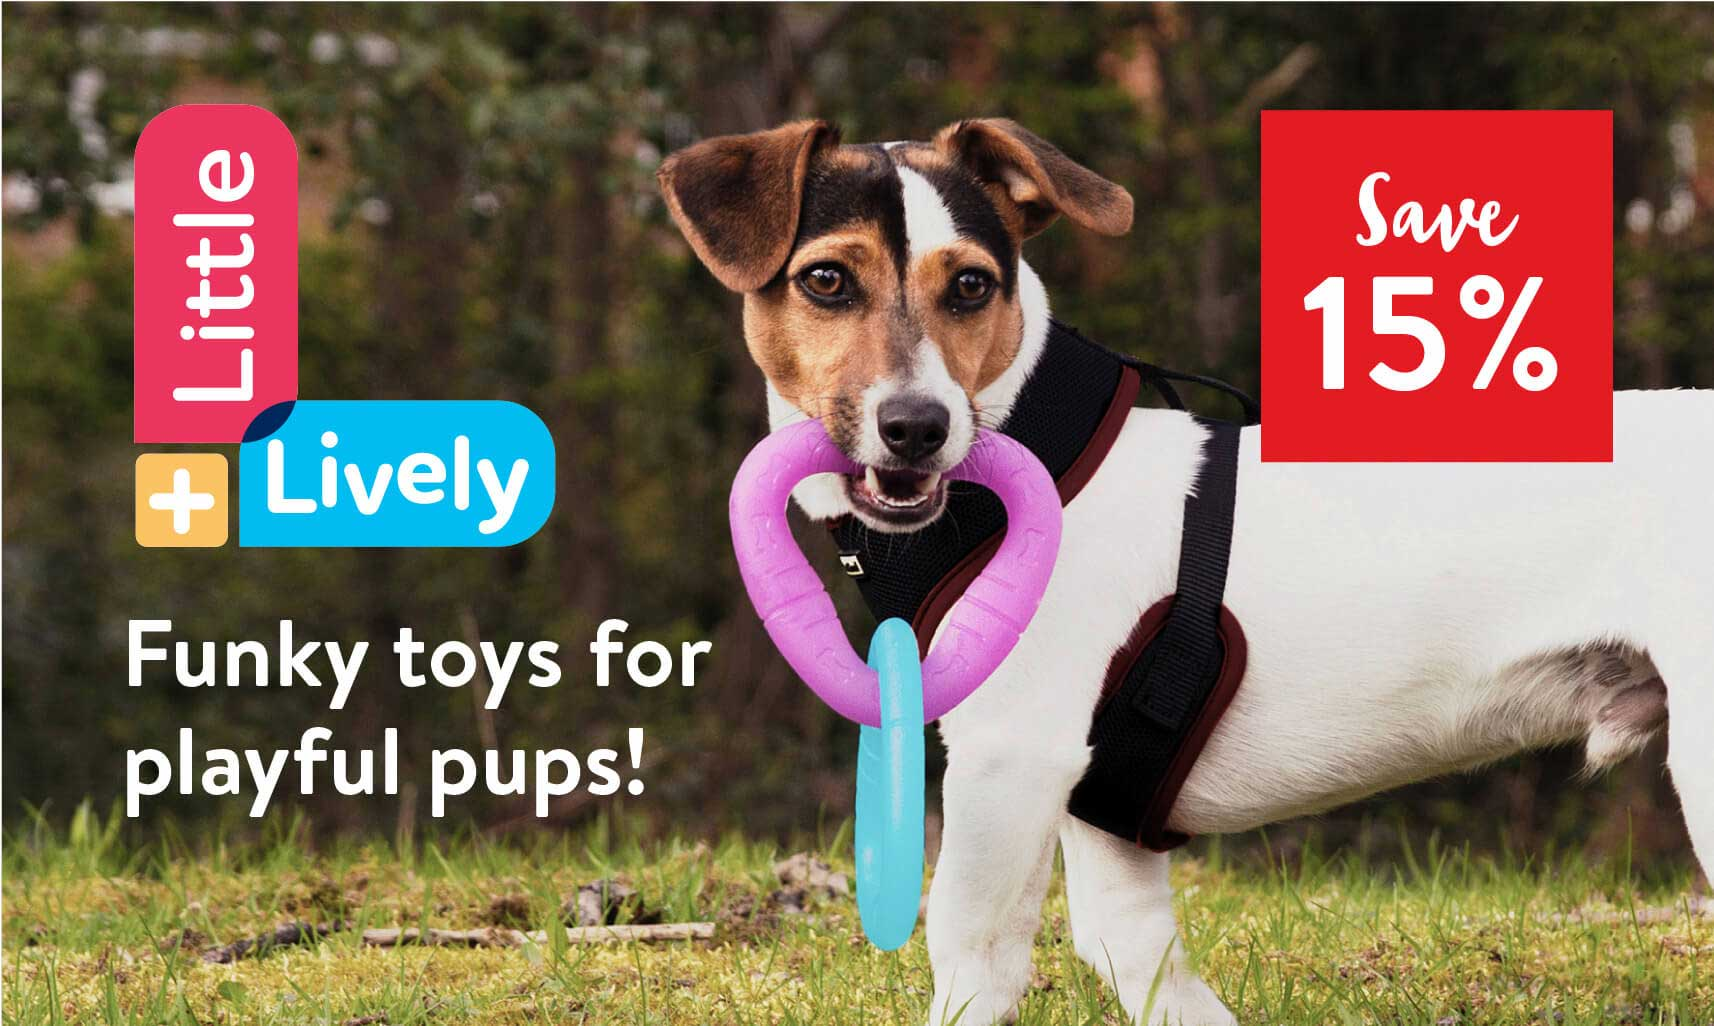 Little and Lively - Funky toys for playful pups! Save 15%